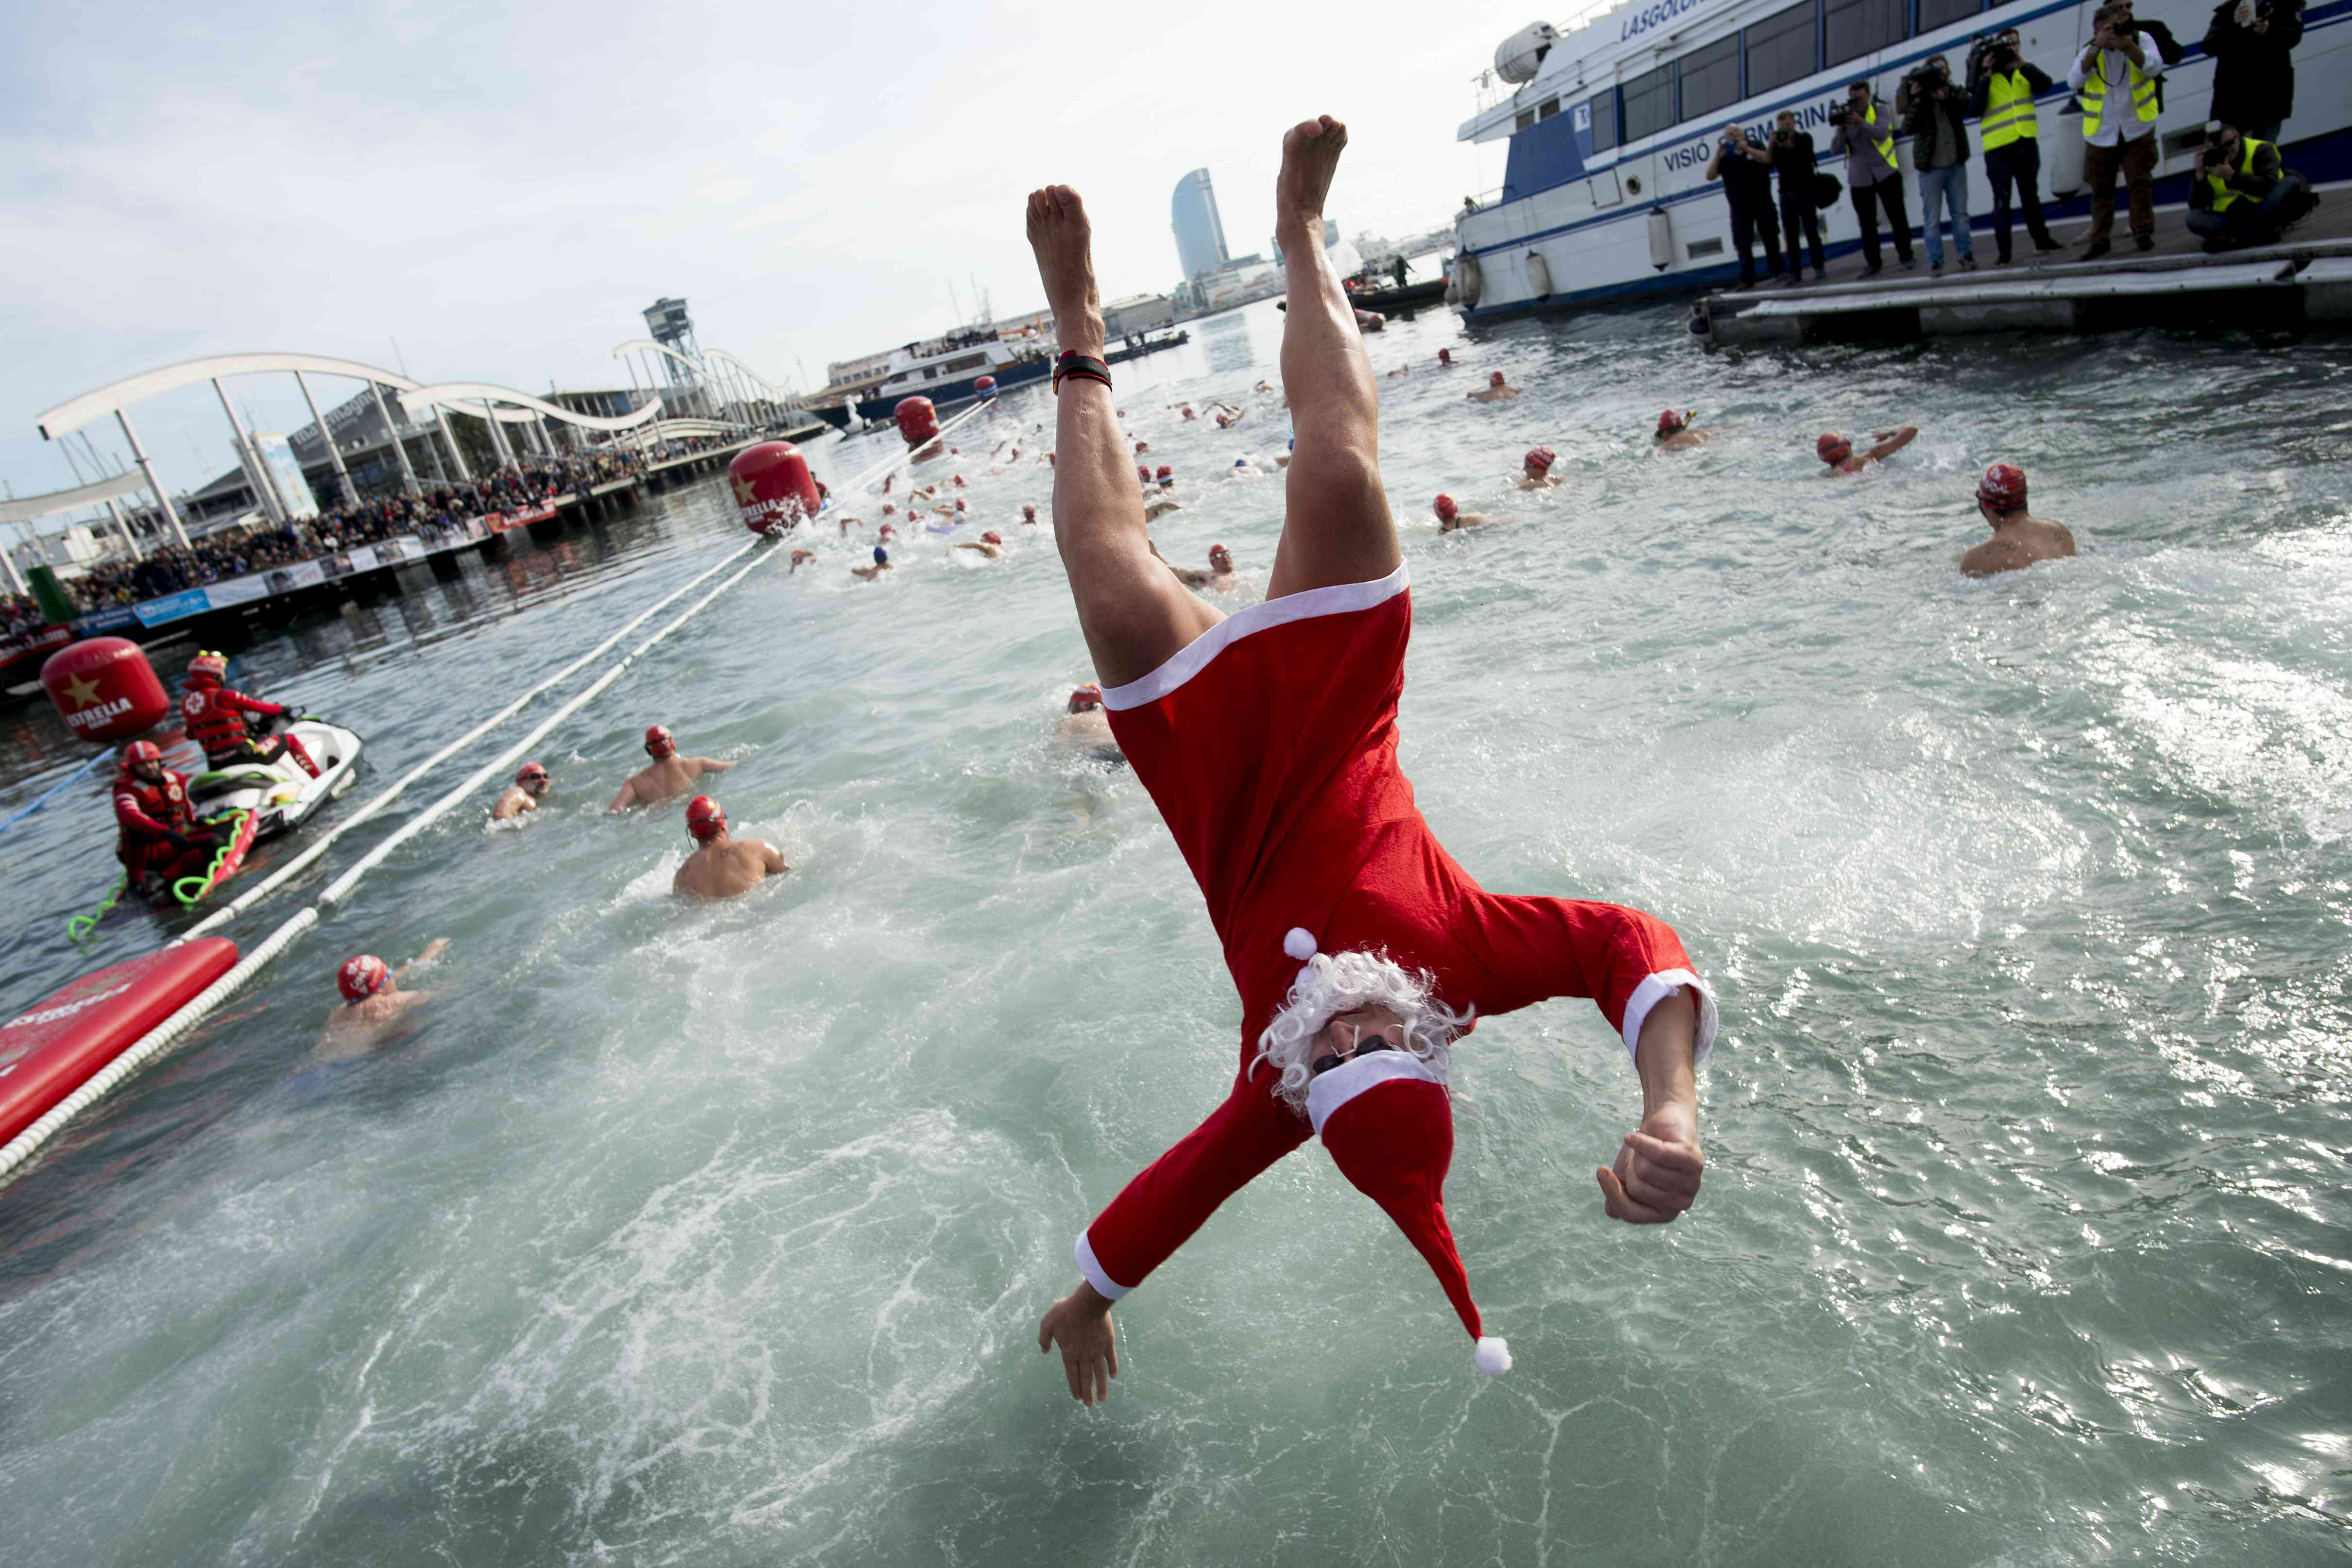 A participant in a Santa Claus costume jumps into the water during the 109th edition of the 'Copa Nadal' (Christmas Cup) swimming competition in Barcelona, Spain, on Tuesday. (Photo credit: Josep Lago/AFP)